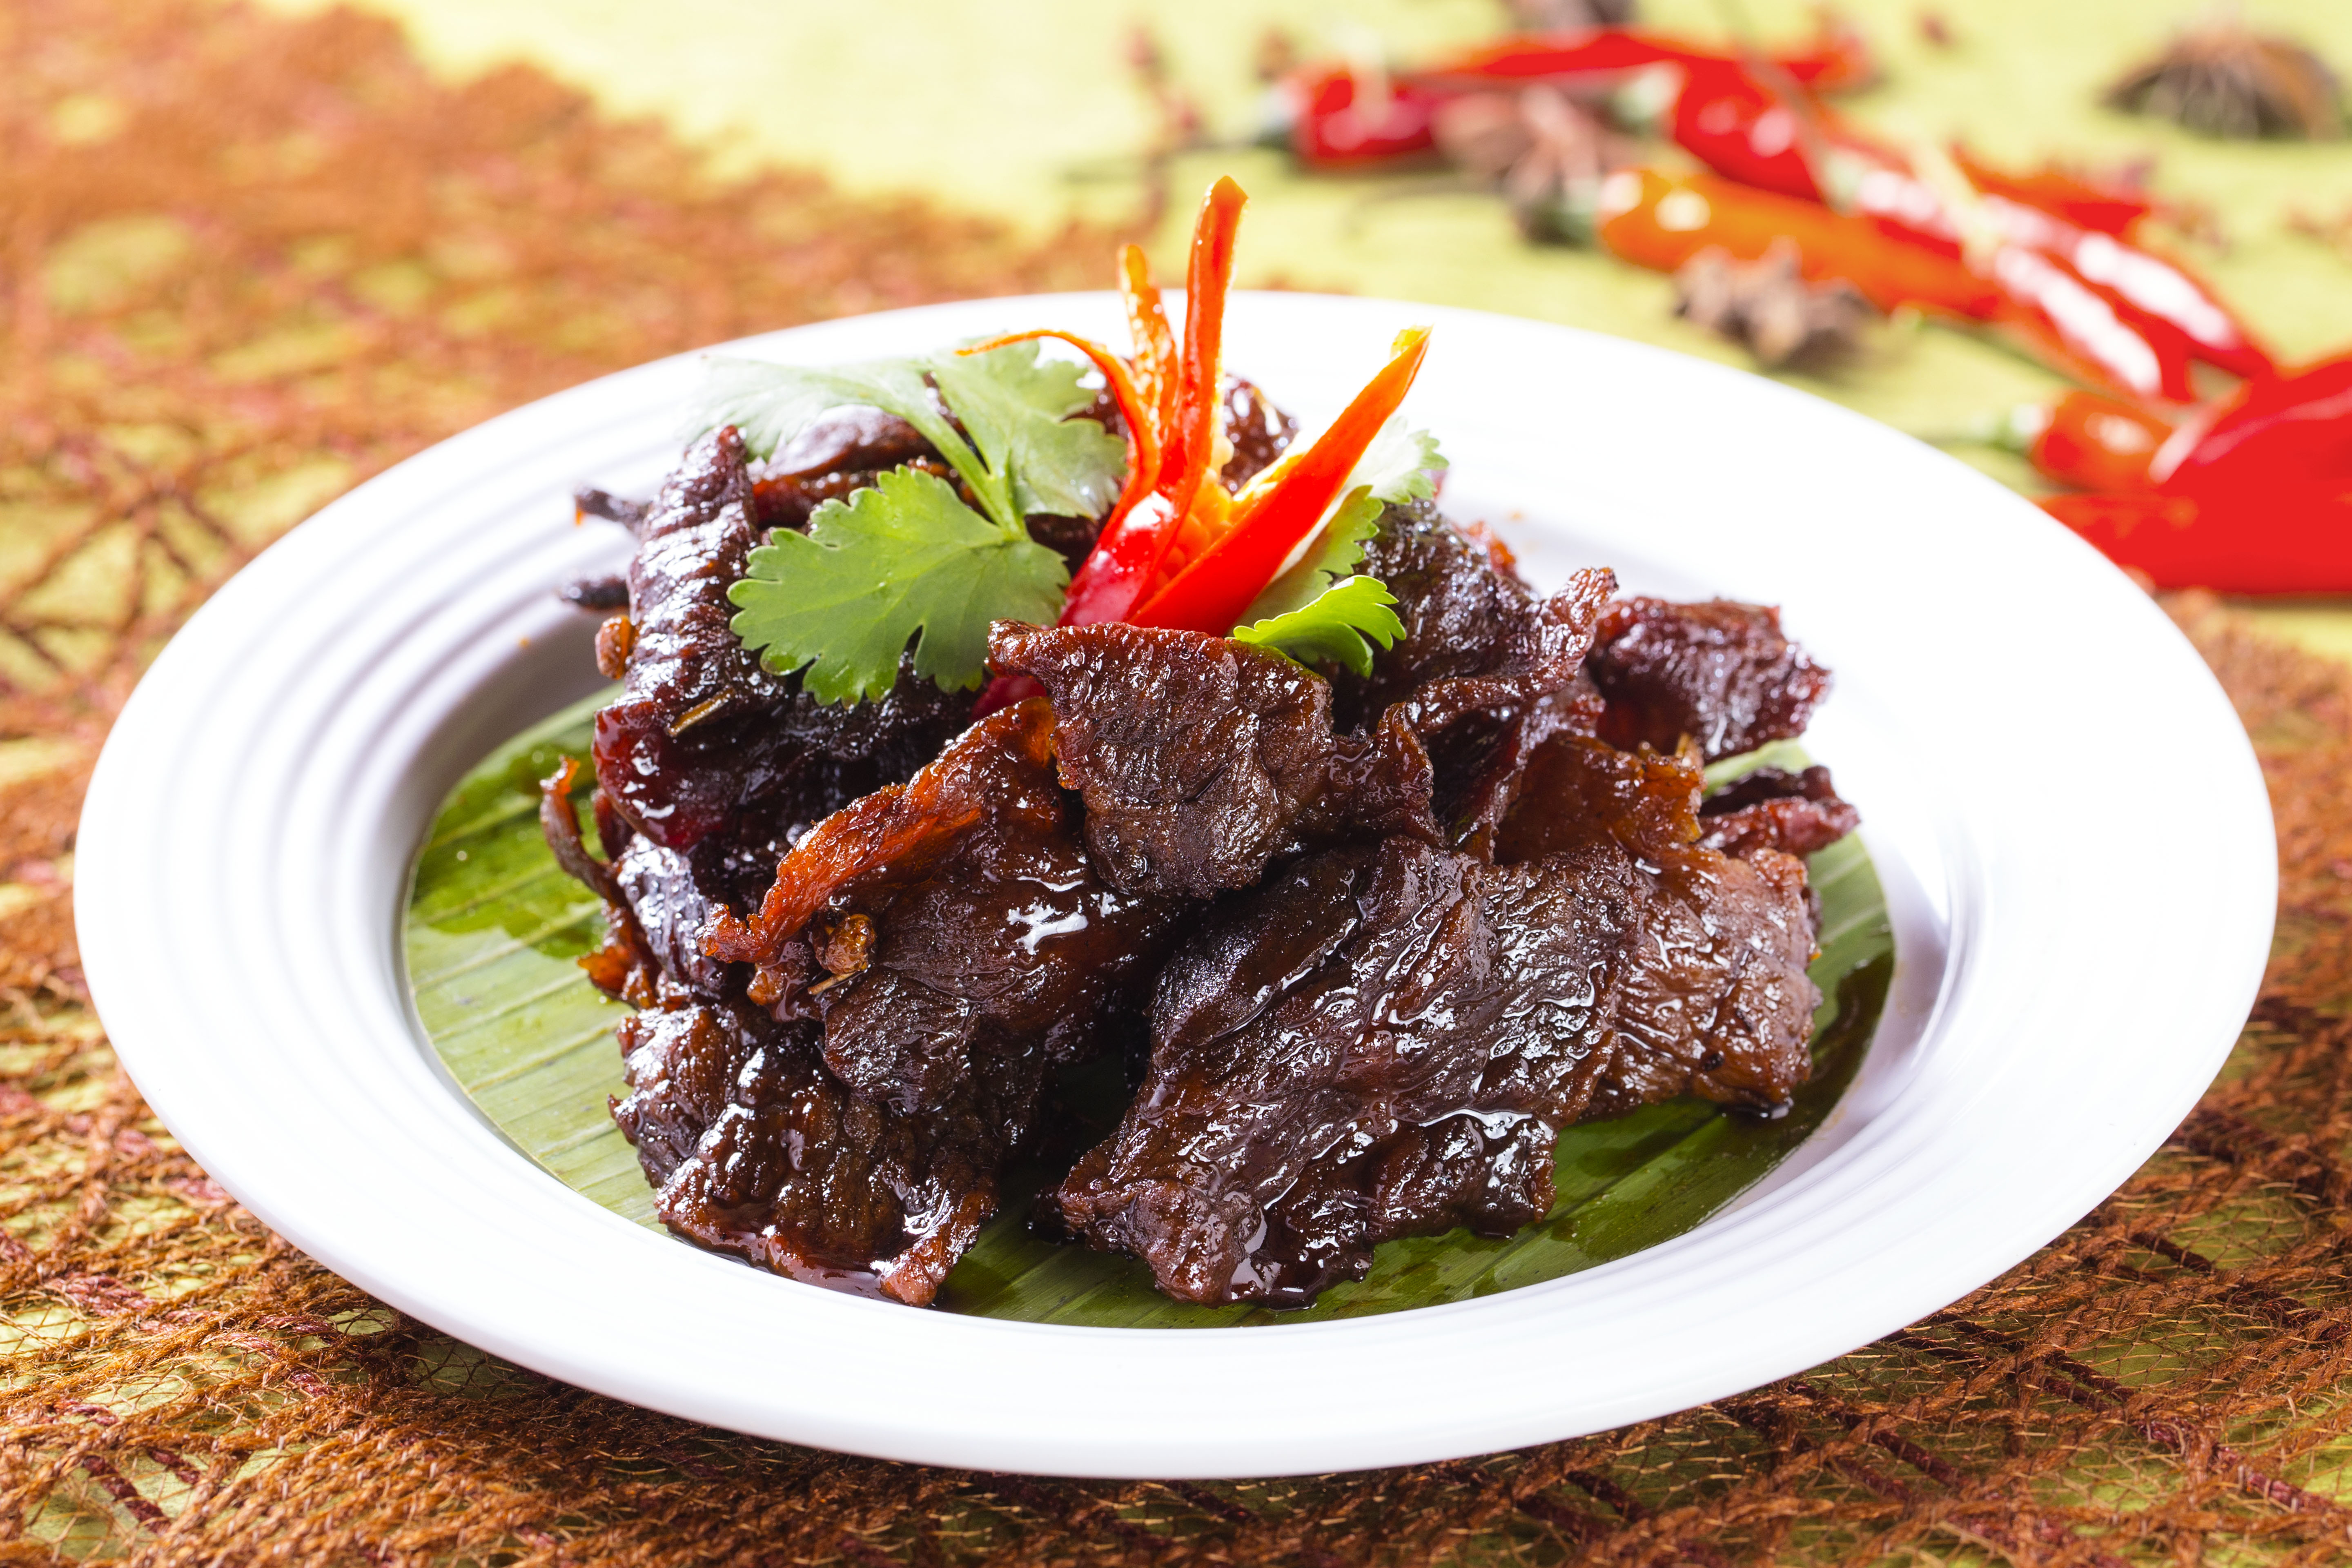 Stir-fried Beef Fillet with Dried Citrus Peel in Sweet and Spicy Sauce